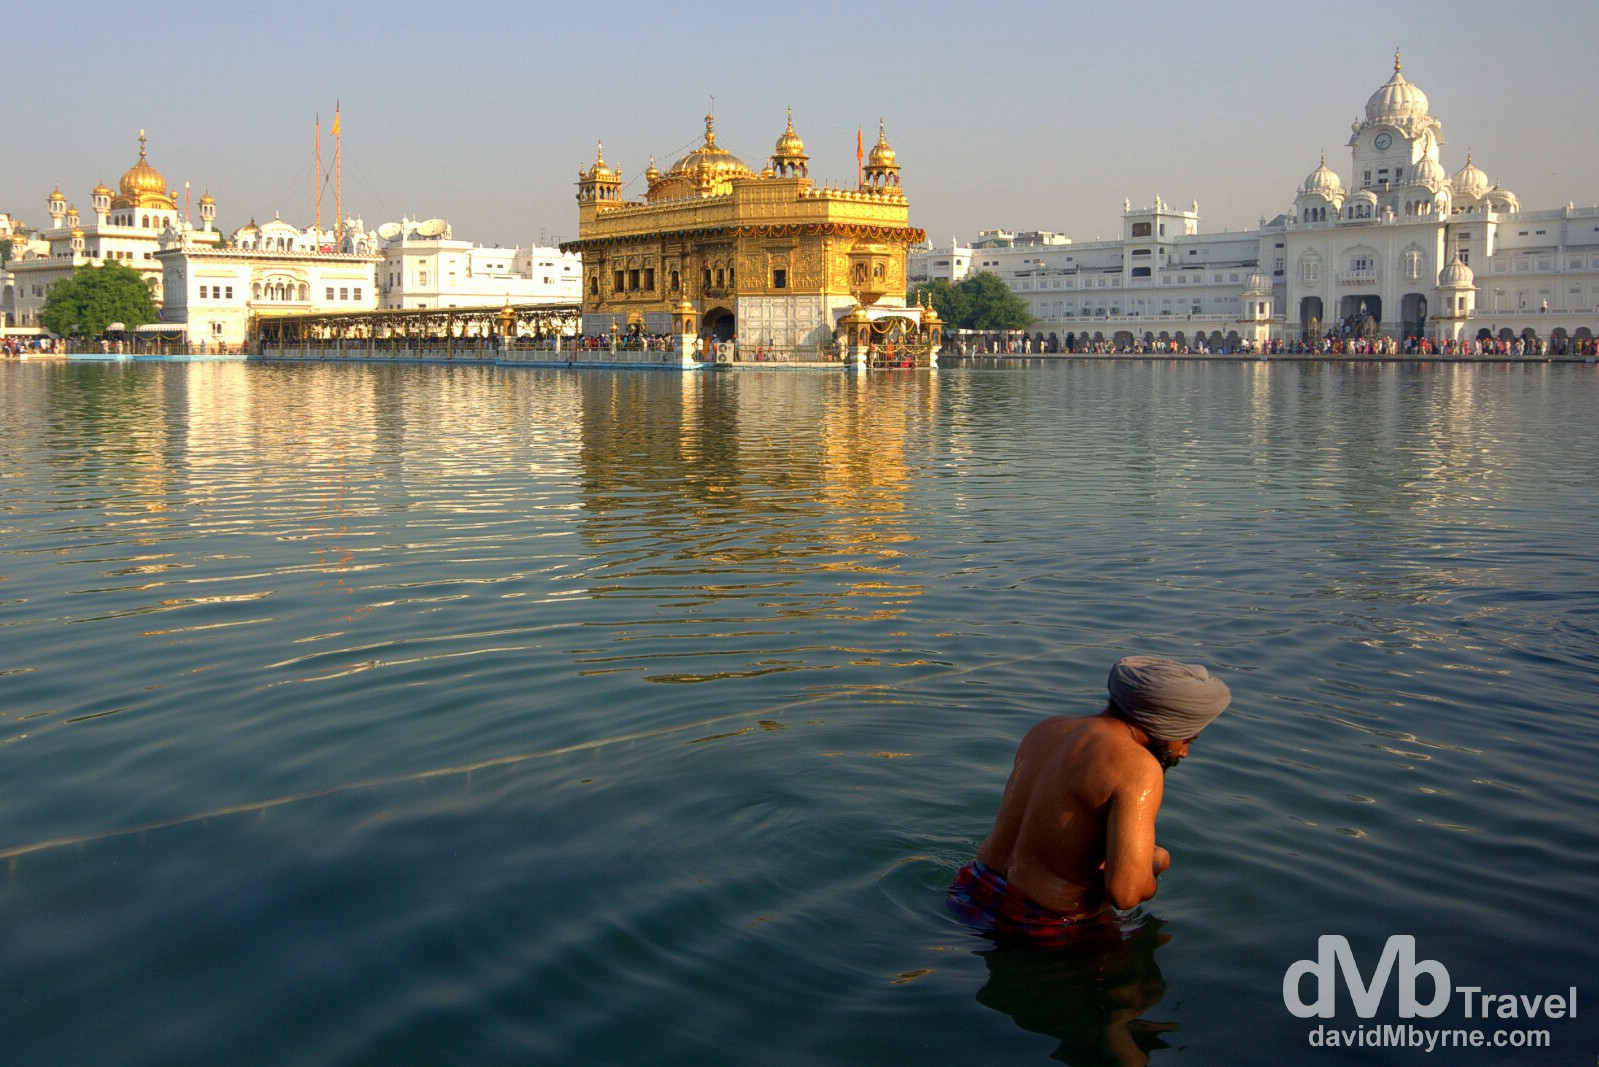 Bathing in the Amrit Sarovar (Pool of Nectar) in the Golden Temple complex, Amritsar, India. October 9th 2012.